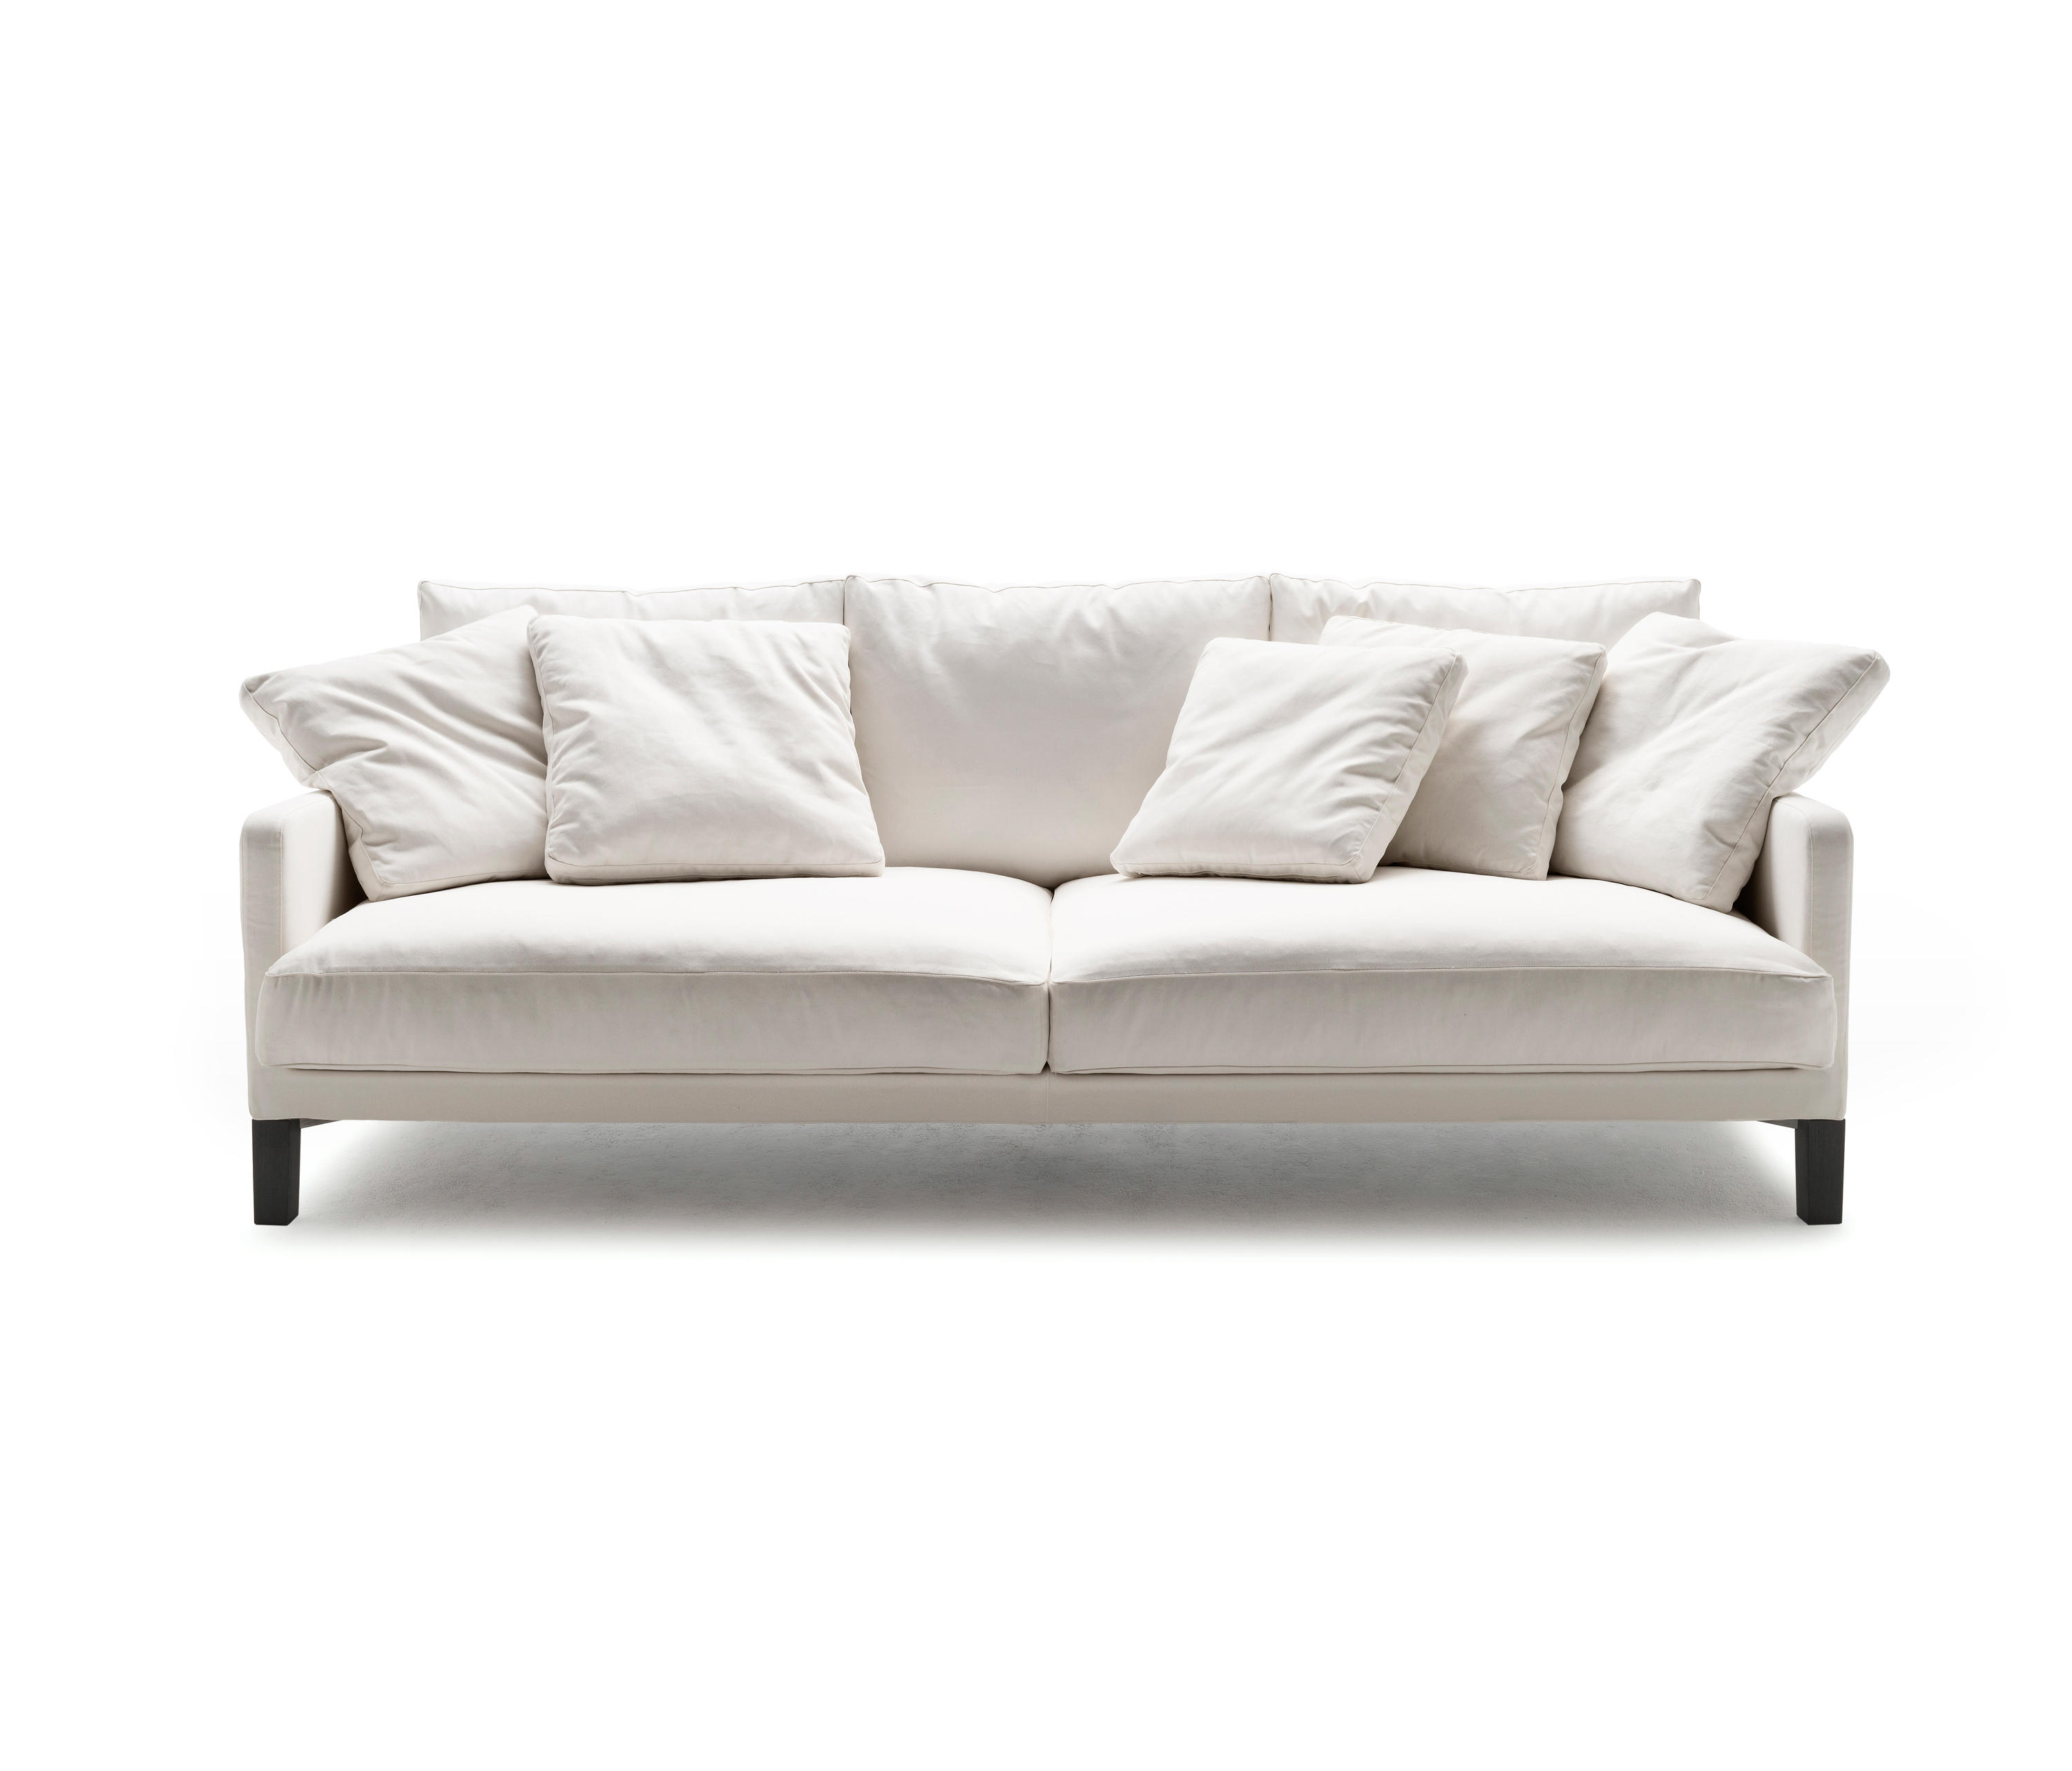 Dumas Sofa By Living Divani | Sofas ...